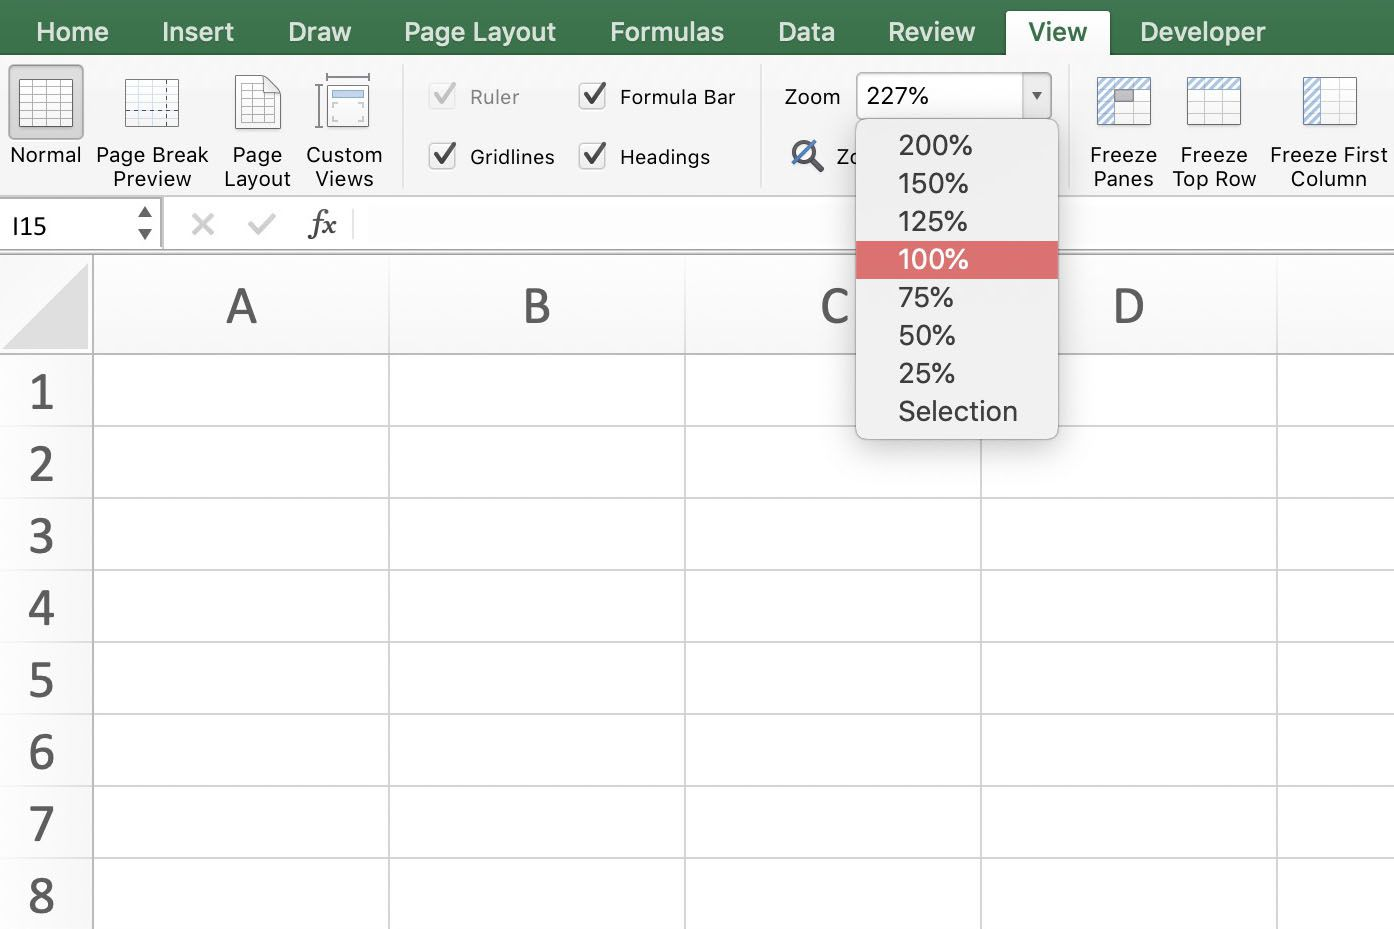 Zoom in Excel: Change Your Worksheet Magnification